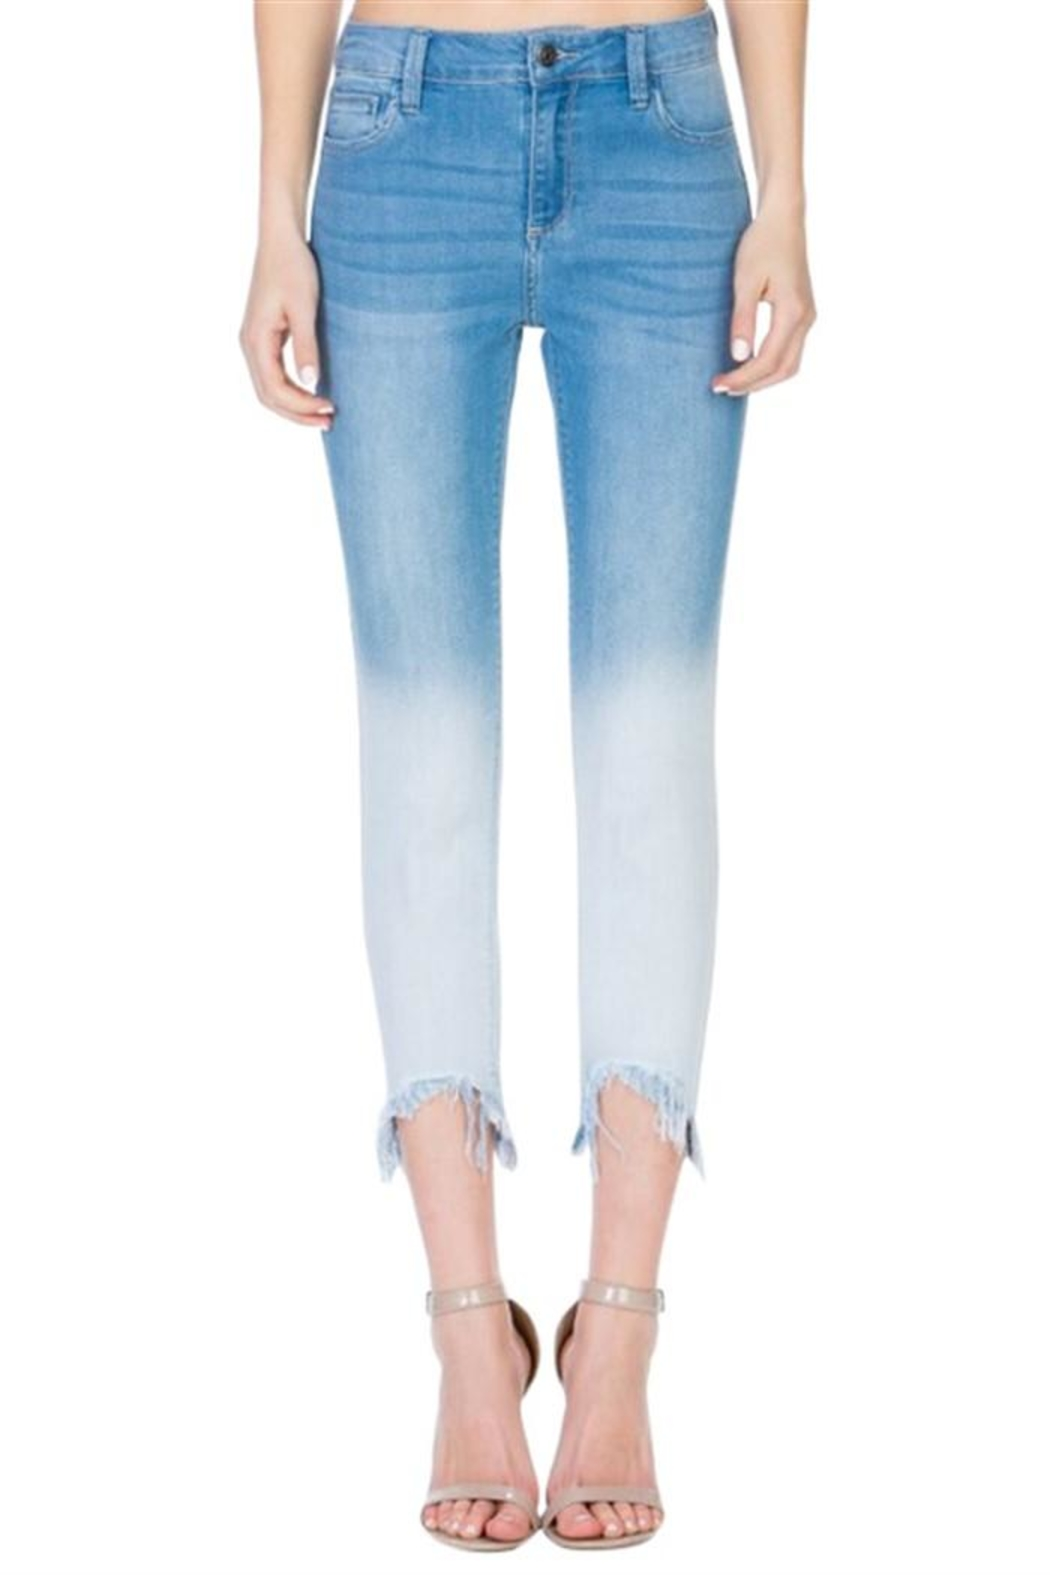 Cello Jeans Dip Dyed Jeans - Main Image